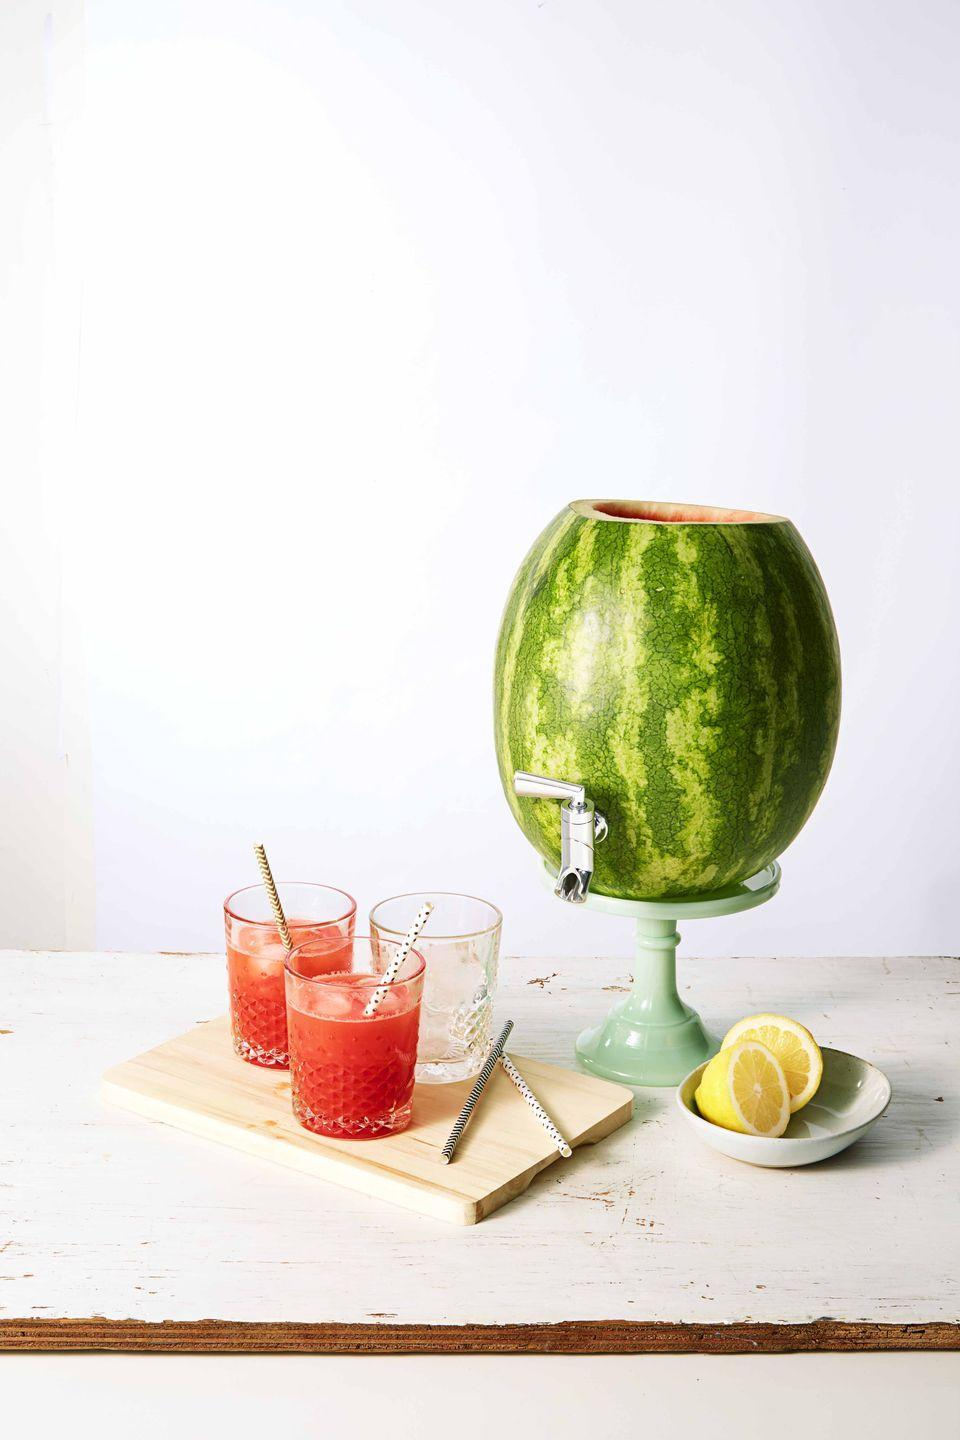 """<p>Cocktails feel a lot more special when served from a watermelon. Don't you think? <em><br></em></p><p><a href=""""https://www.goodhousekeeping.com/food-recipes/how-to/a23788/how-to-make-a-watermelon-keg/"""" rel=""""nofollow noopener"""" target=""""_blank"""" data-ylk=""""slk:Get the recipe for Watermelon Keg »"""" class=""""link rapid-noclick-resp""""><em>Get the recipe for Watermelon Keg »</em></a></p>"""